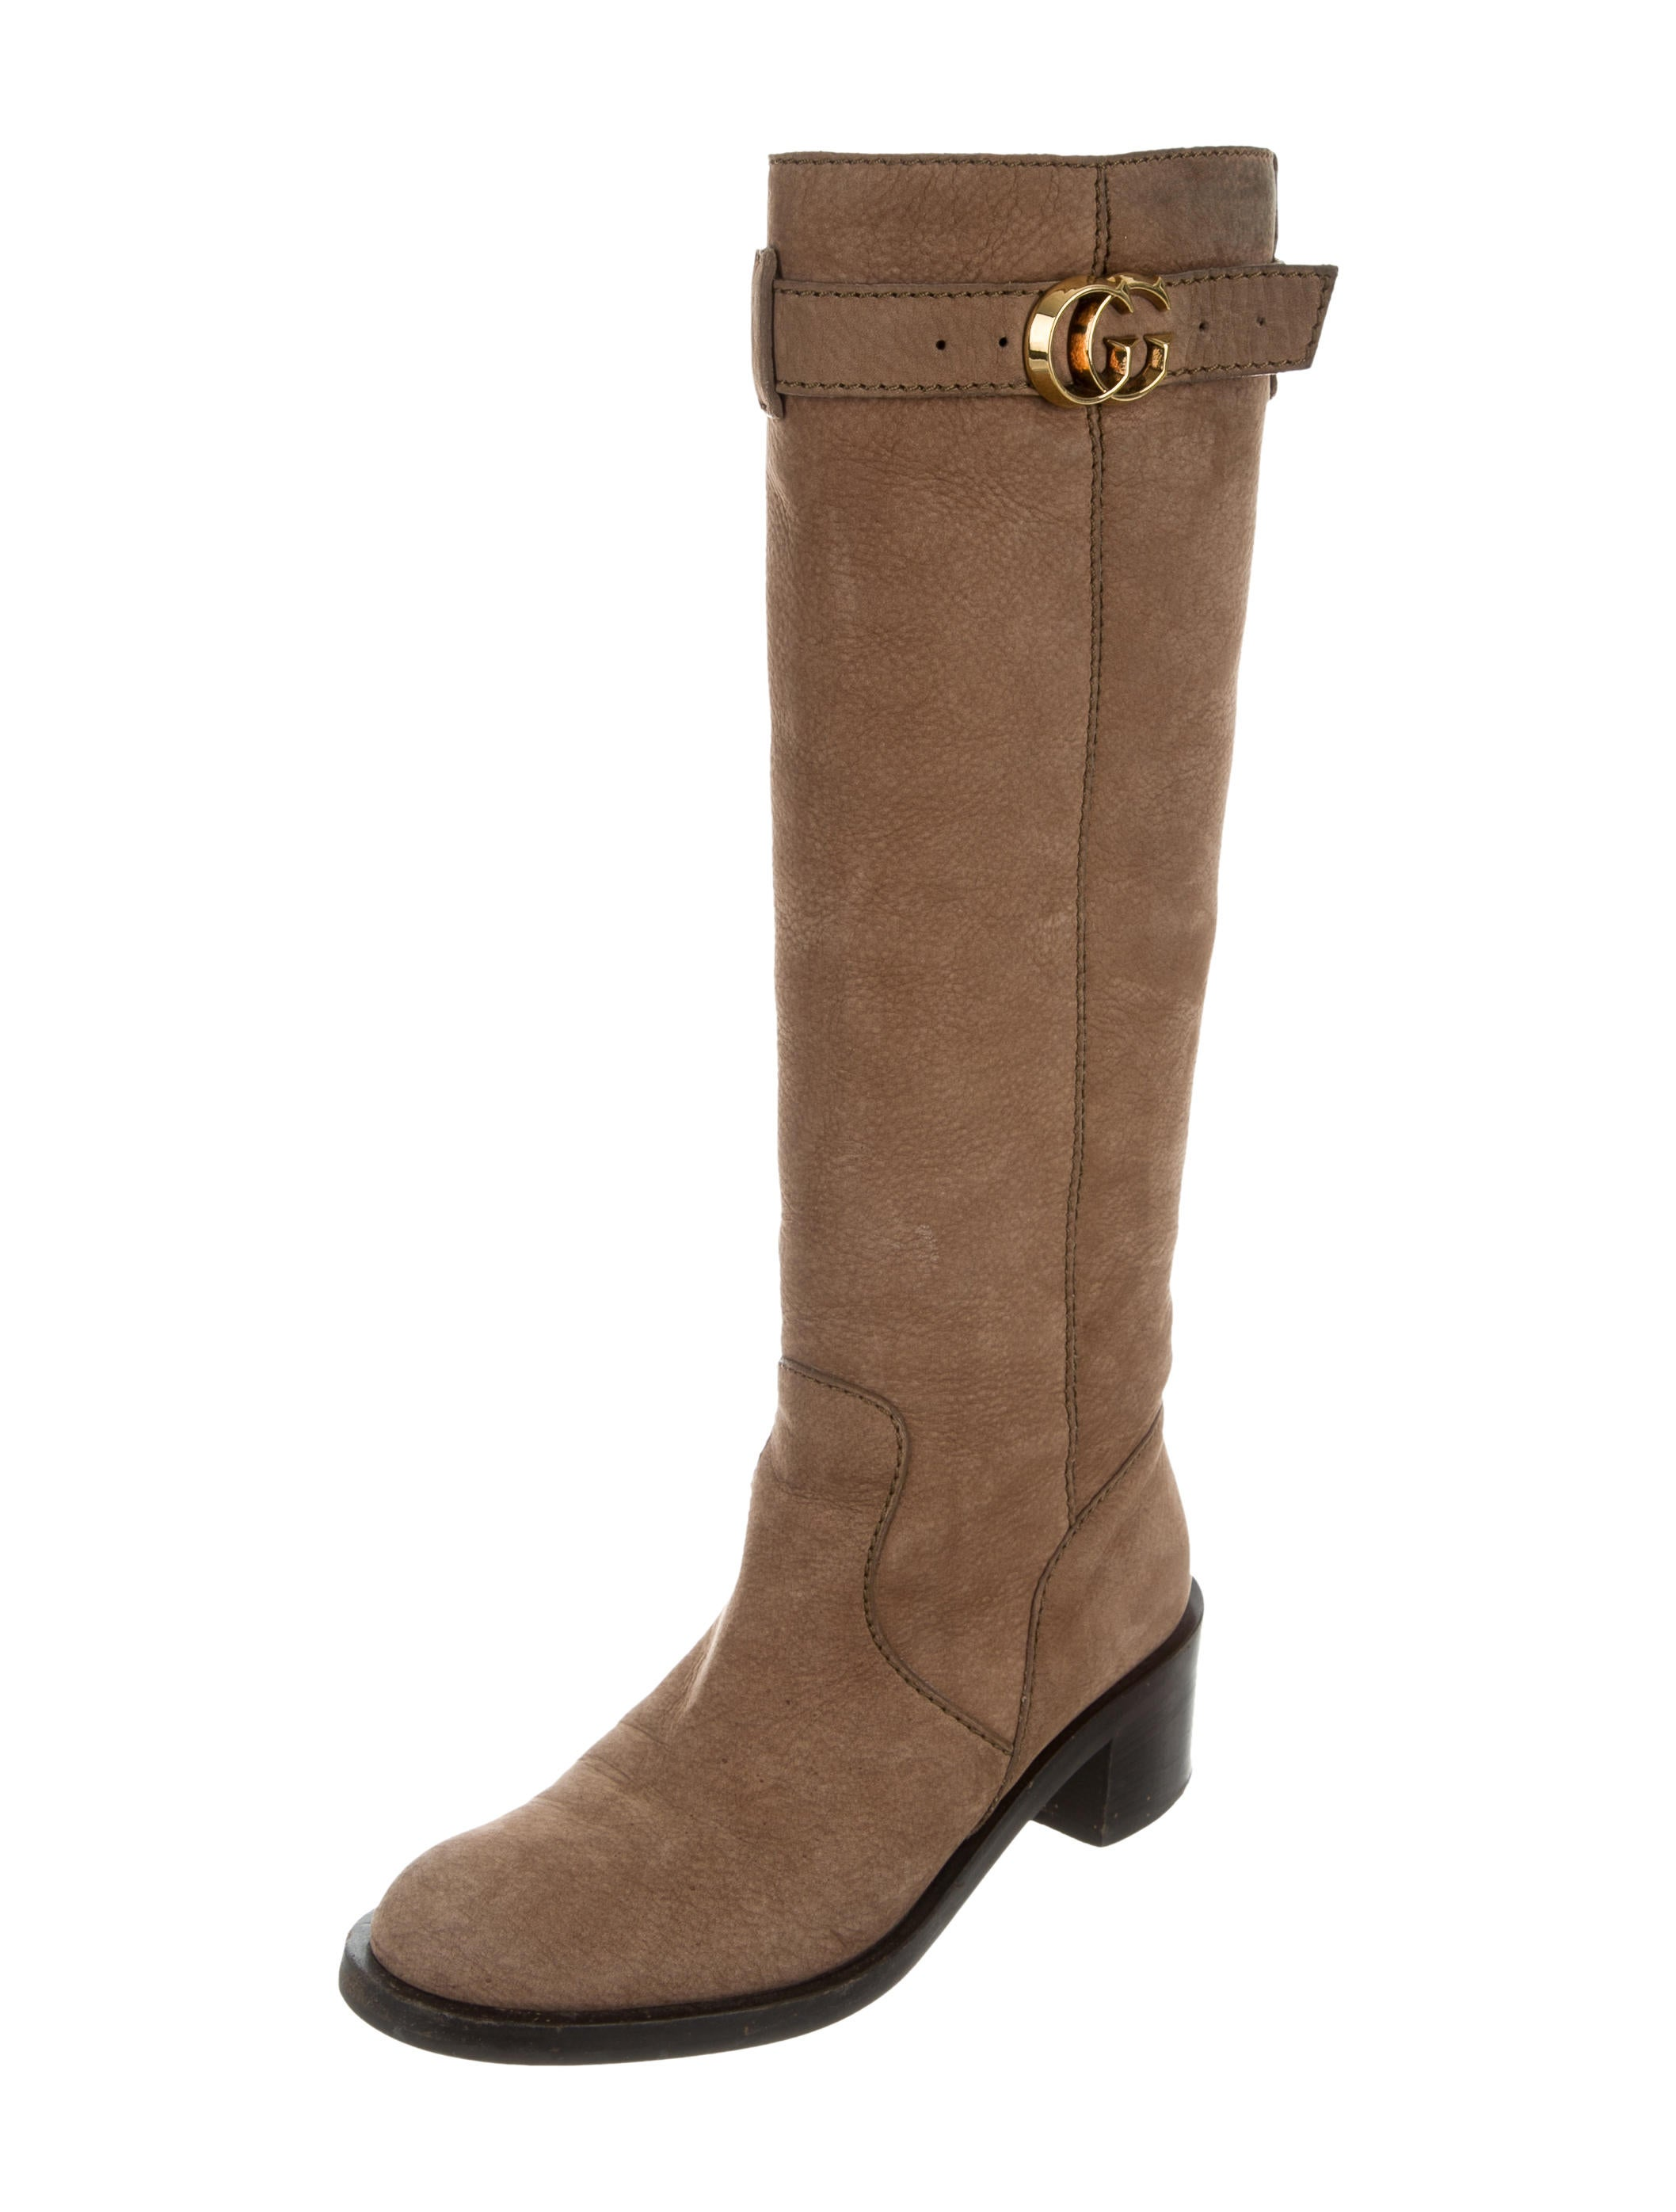 gucci suede knee high boots shoes guc133796 the realreal